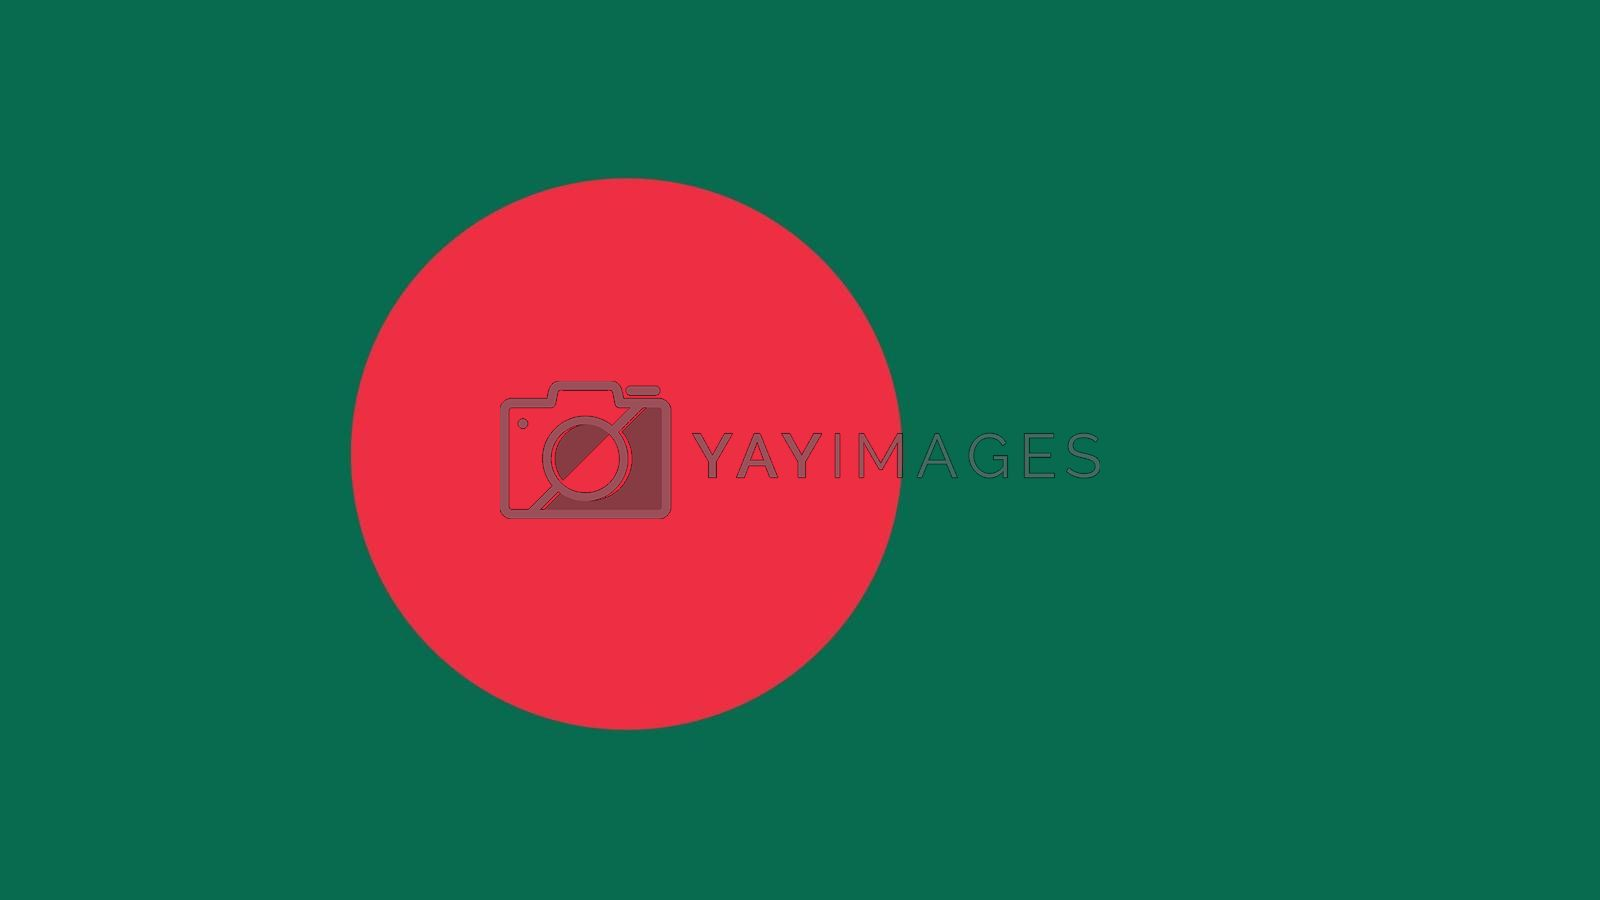 bangladesh Flag for Independence Day and infographic Vector illustration.